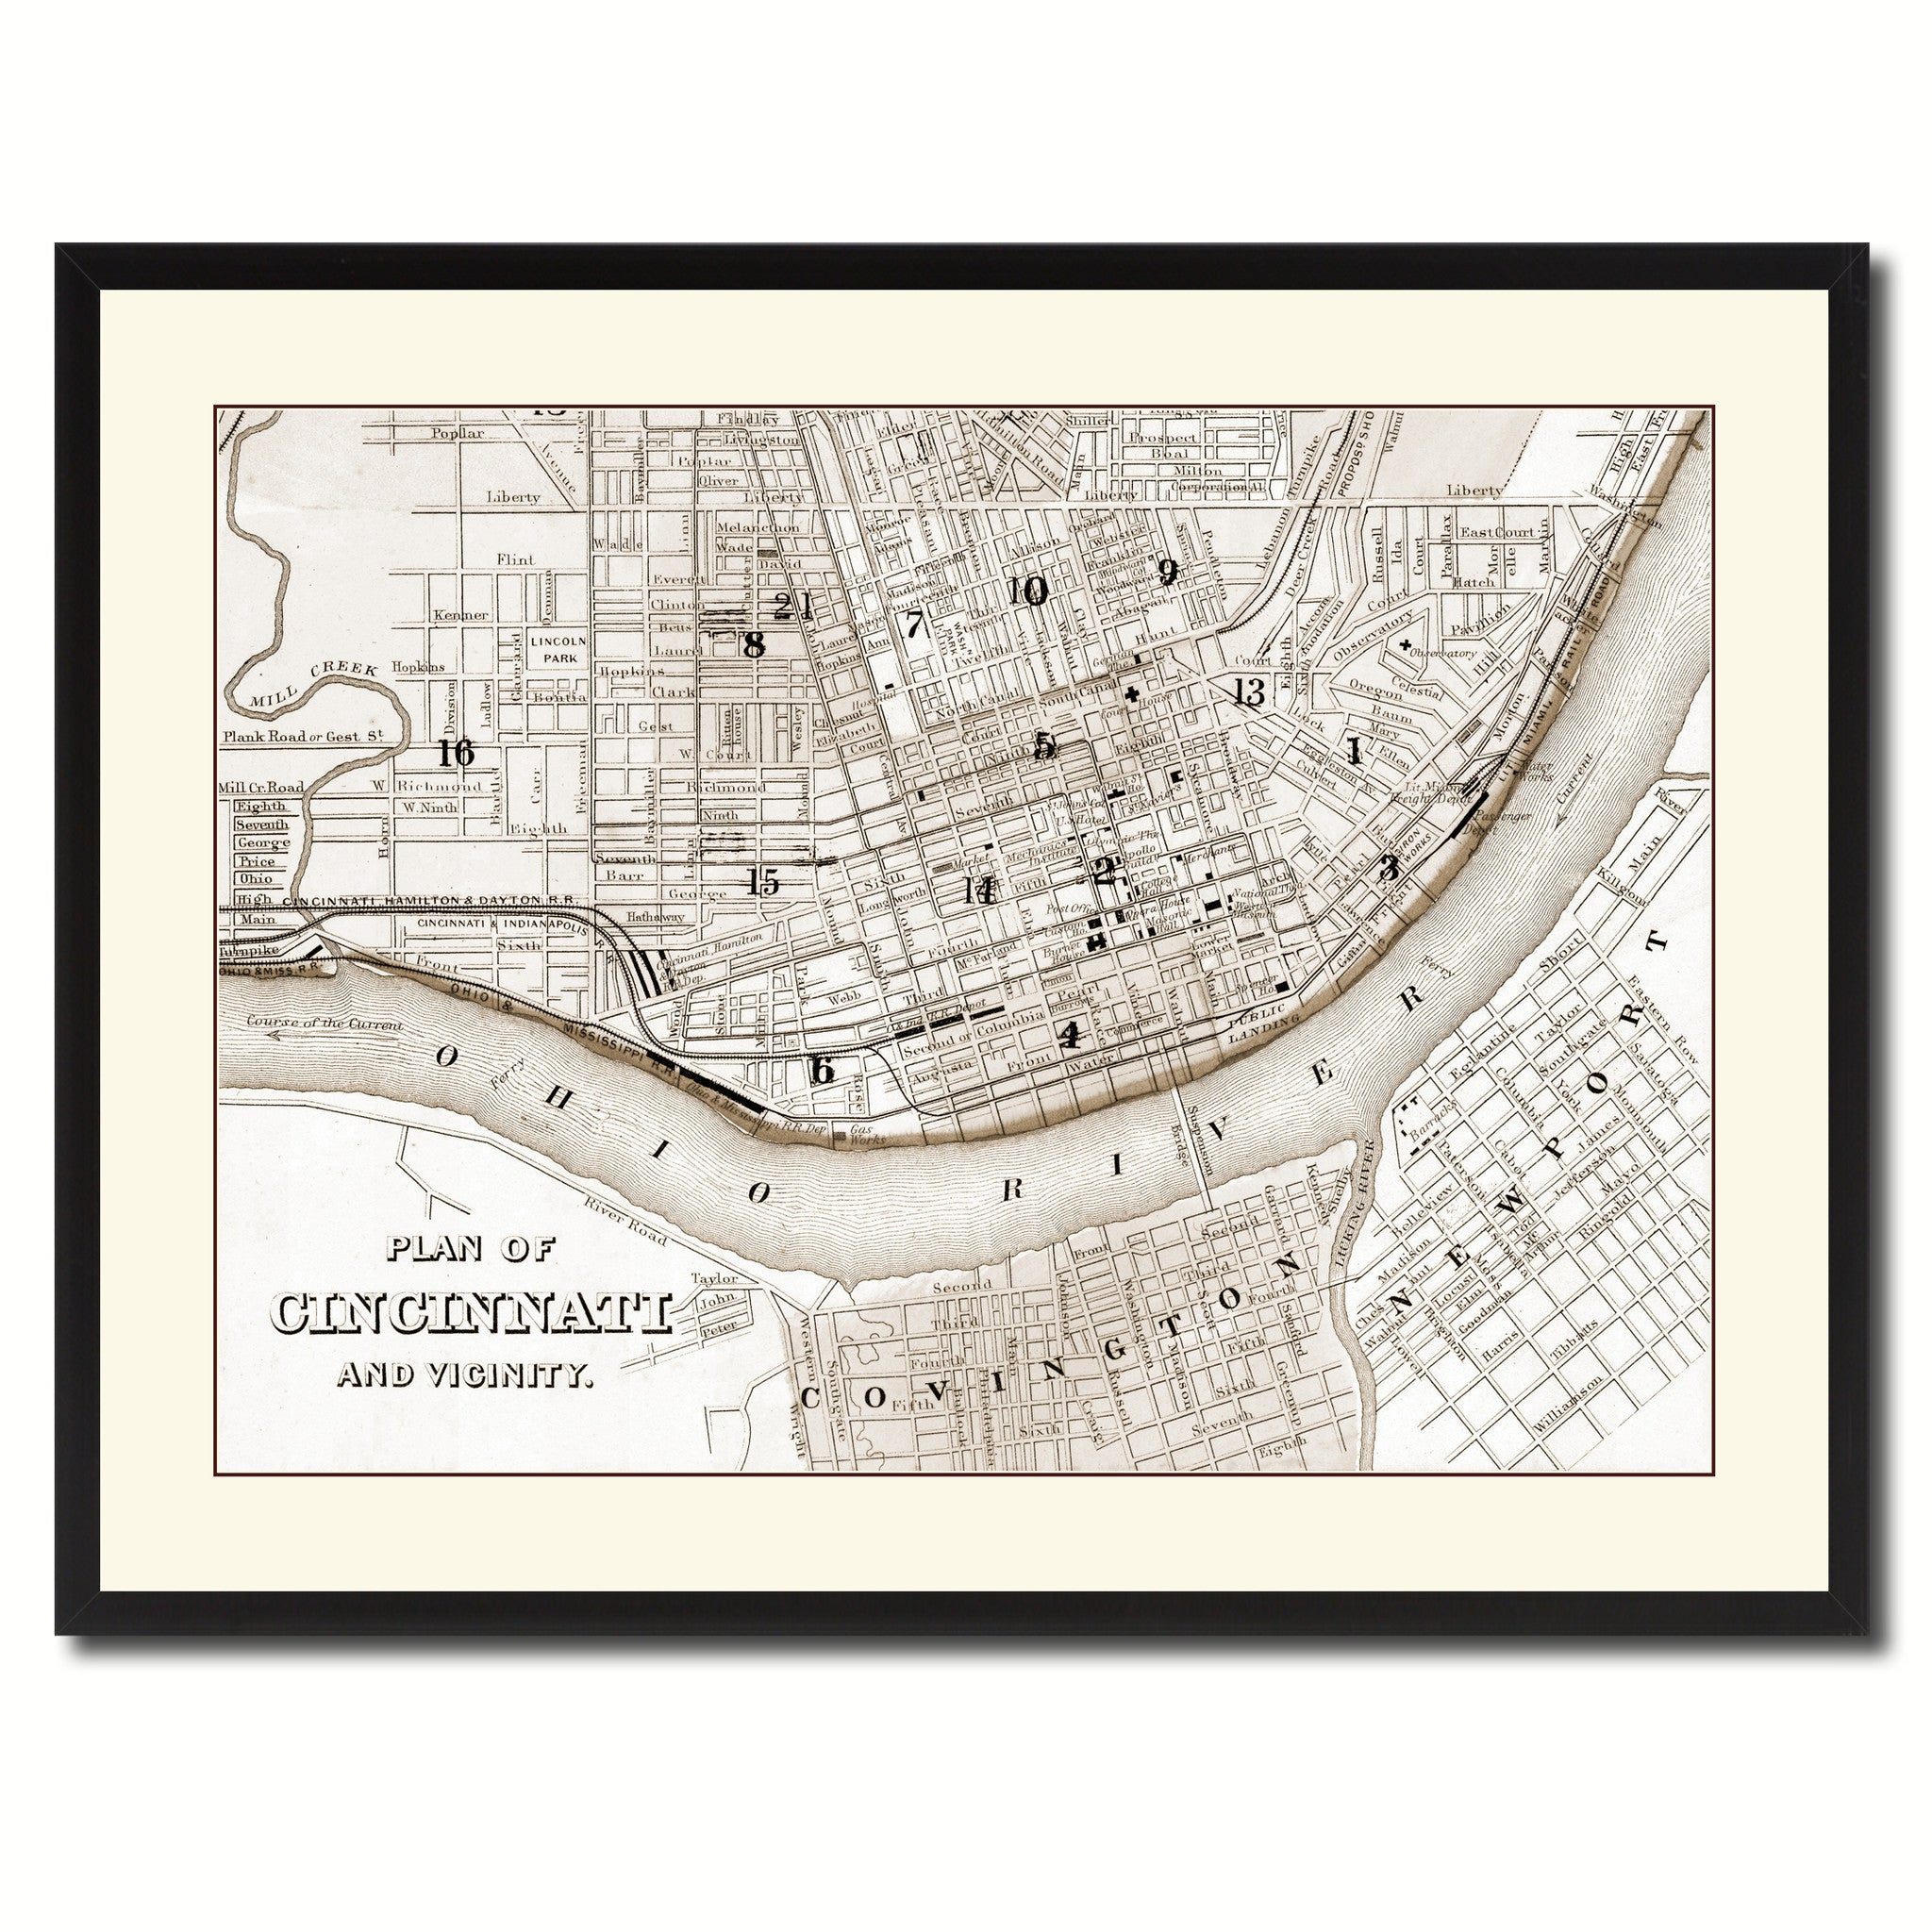 Cincinnati Vintage Sepia Map Canvas Print, Picture Frame Gifts Home Decor Wall Art Decoration